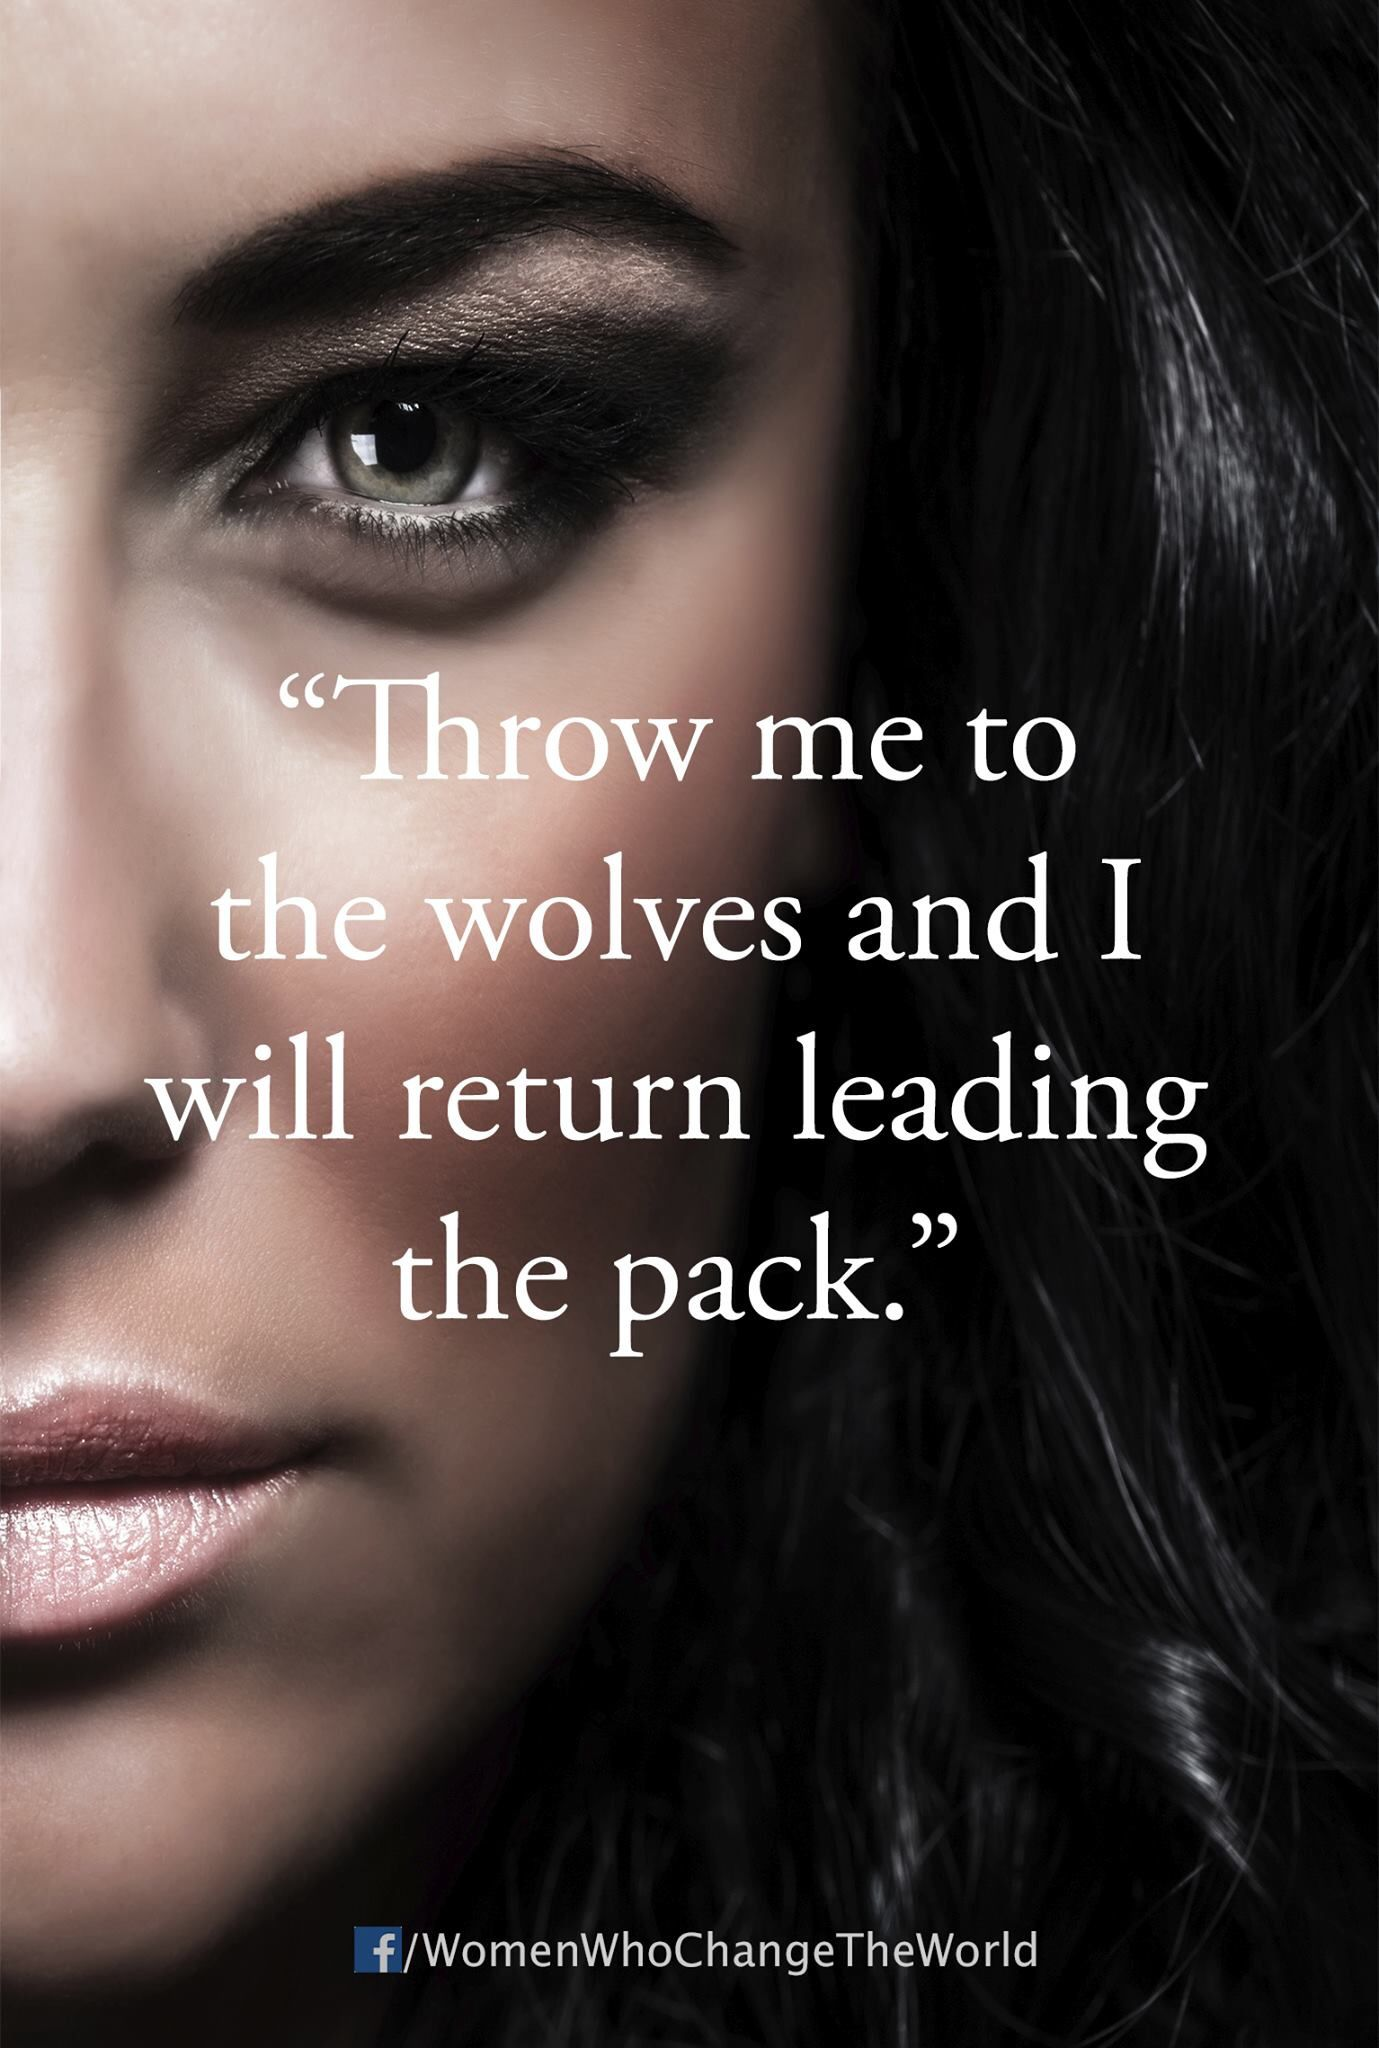 Throw me to the wolves and ill come back leading the pack more strong